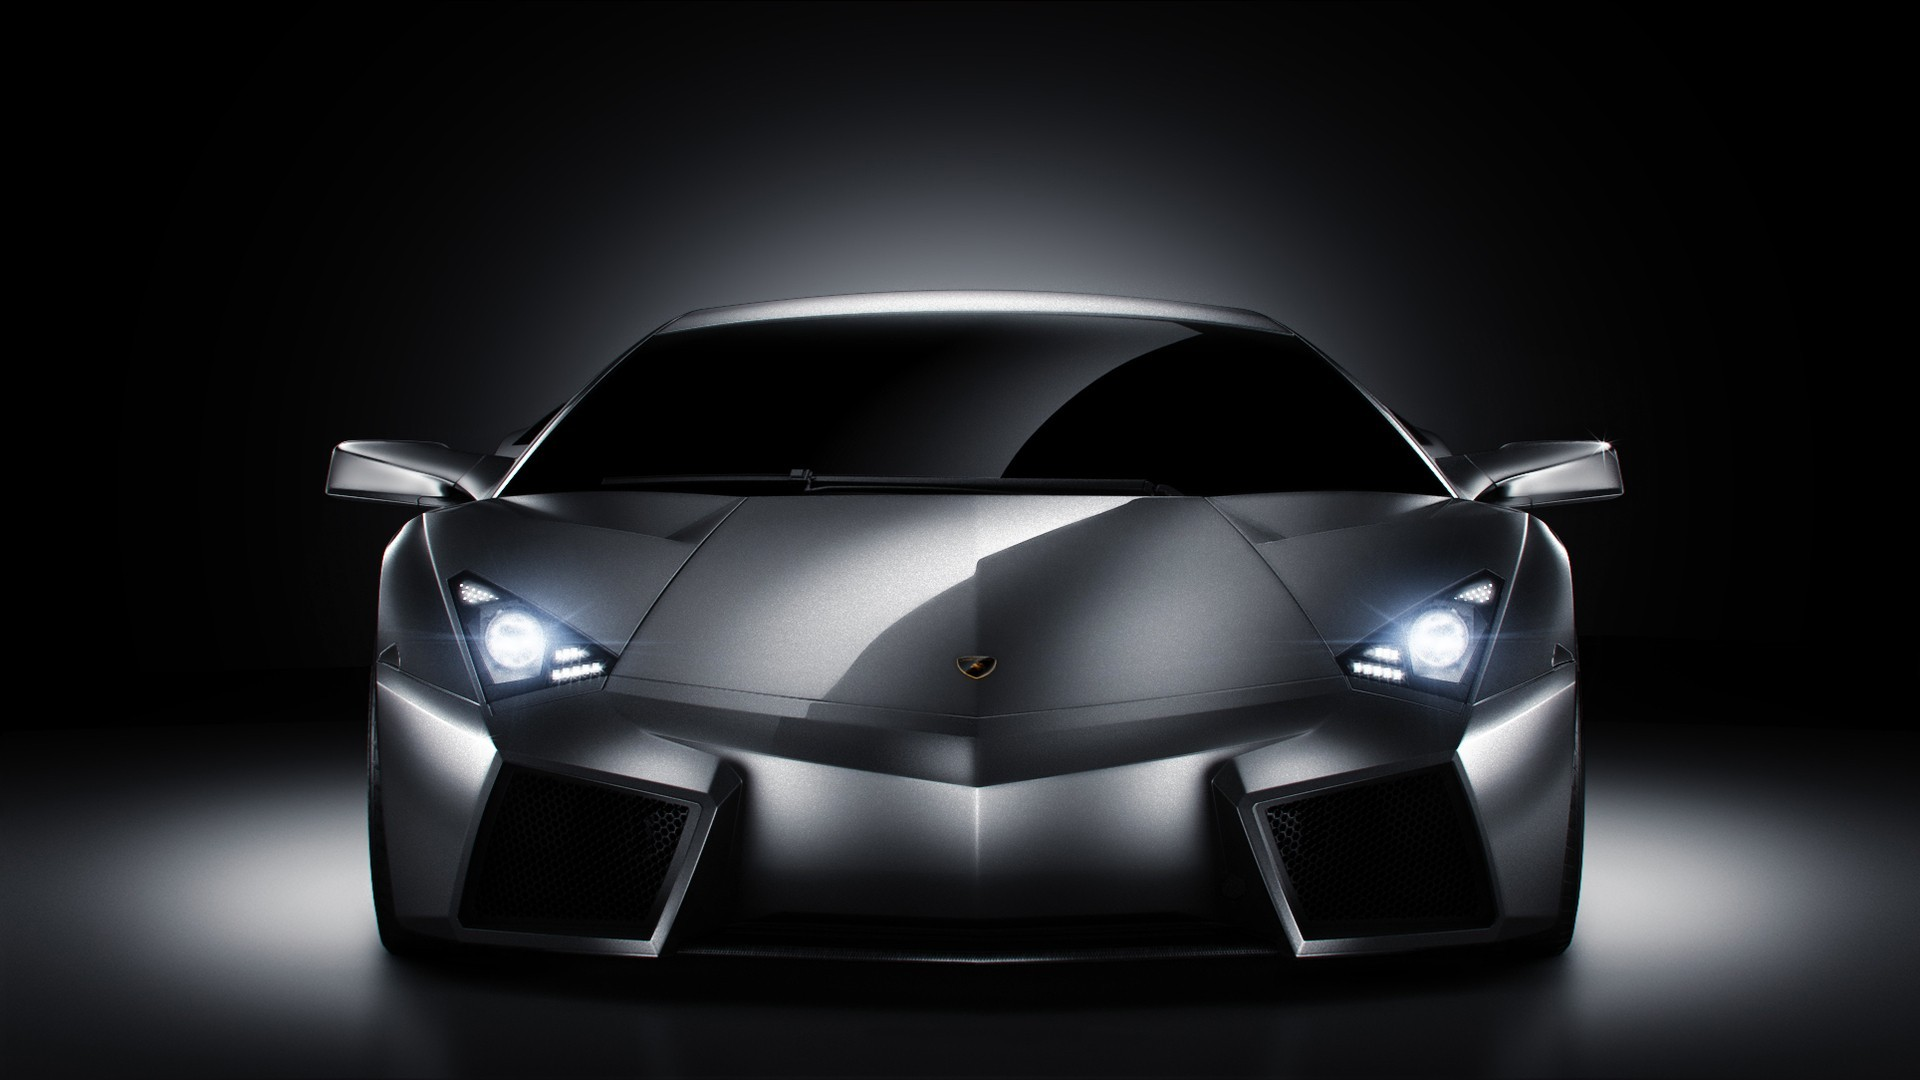 Cool lamborghini pictures wallpaper 1920x1080 16559 for New cool images